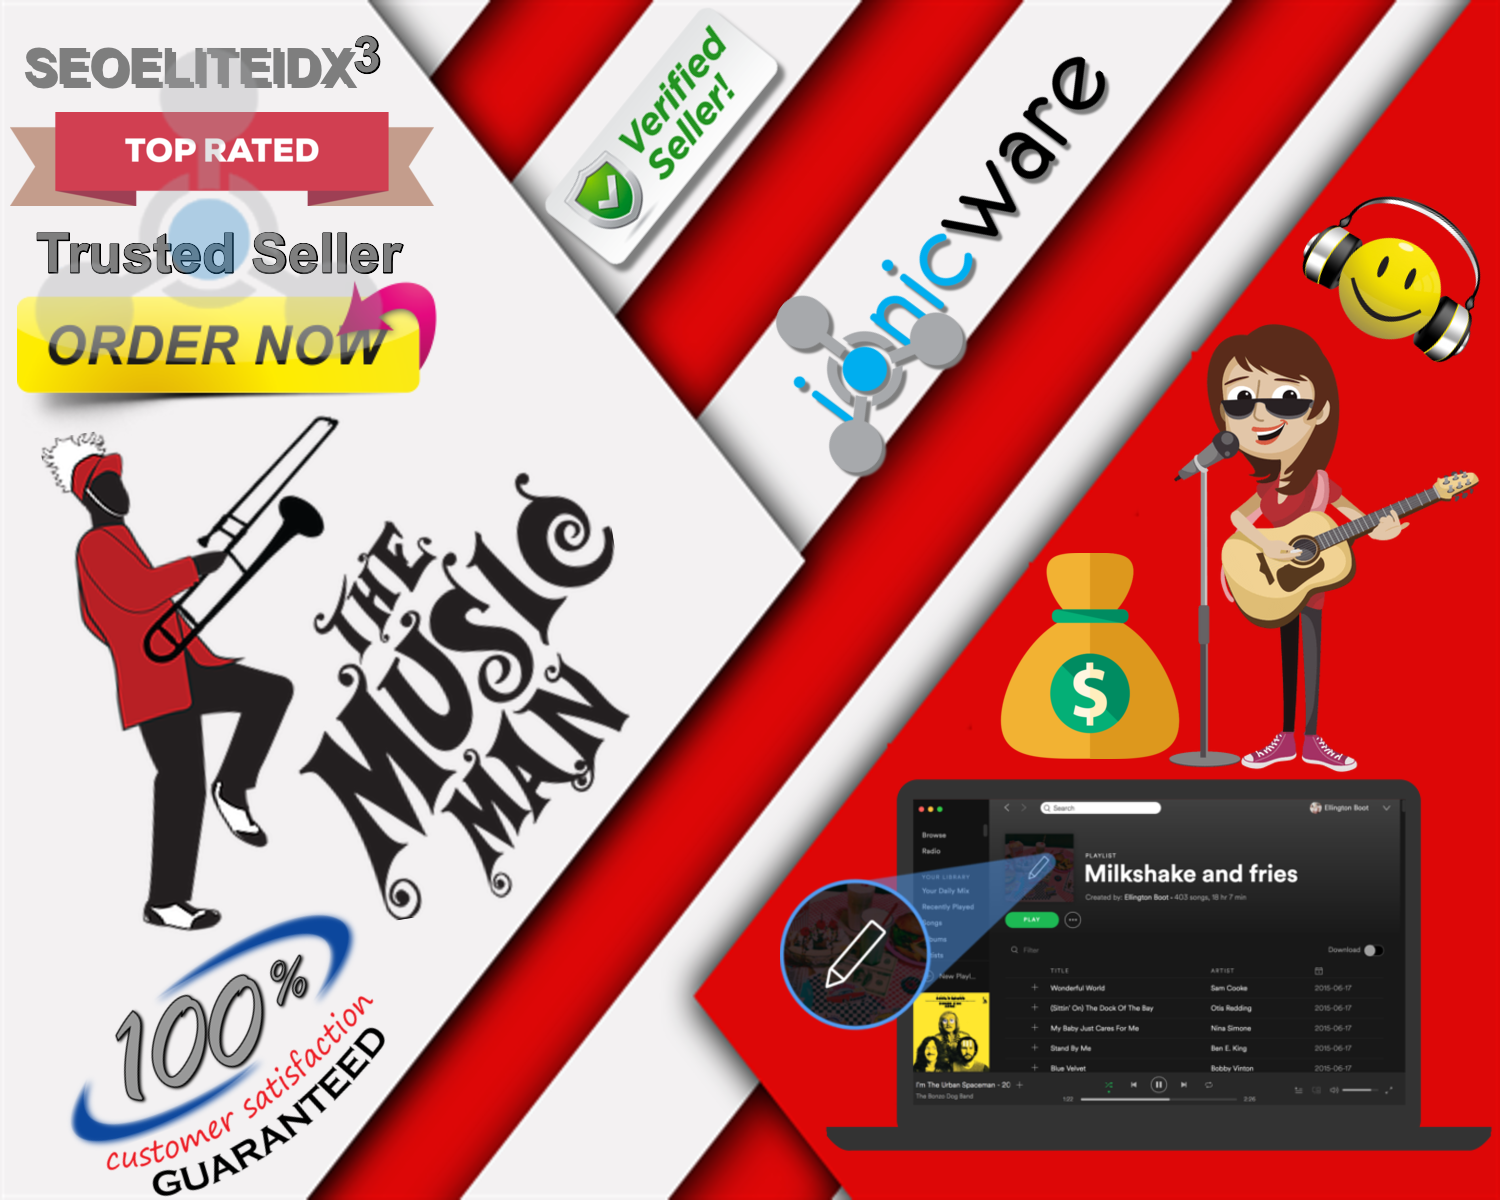 Professional High Quality Great SEO Service 1,000+ Music Playlist Or Artist Profile Followers